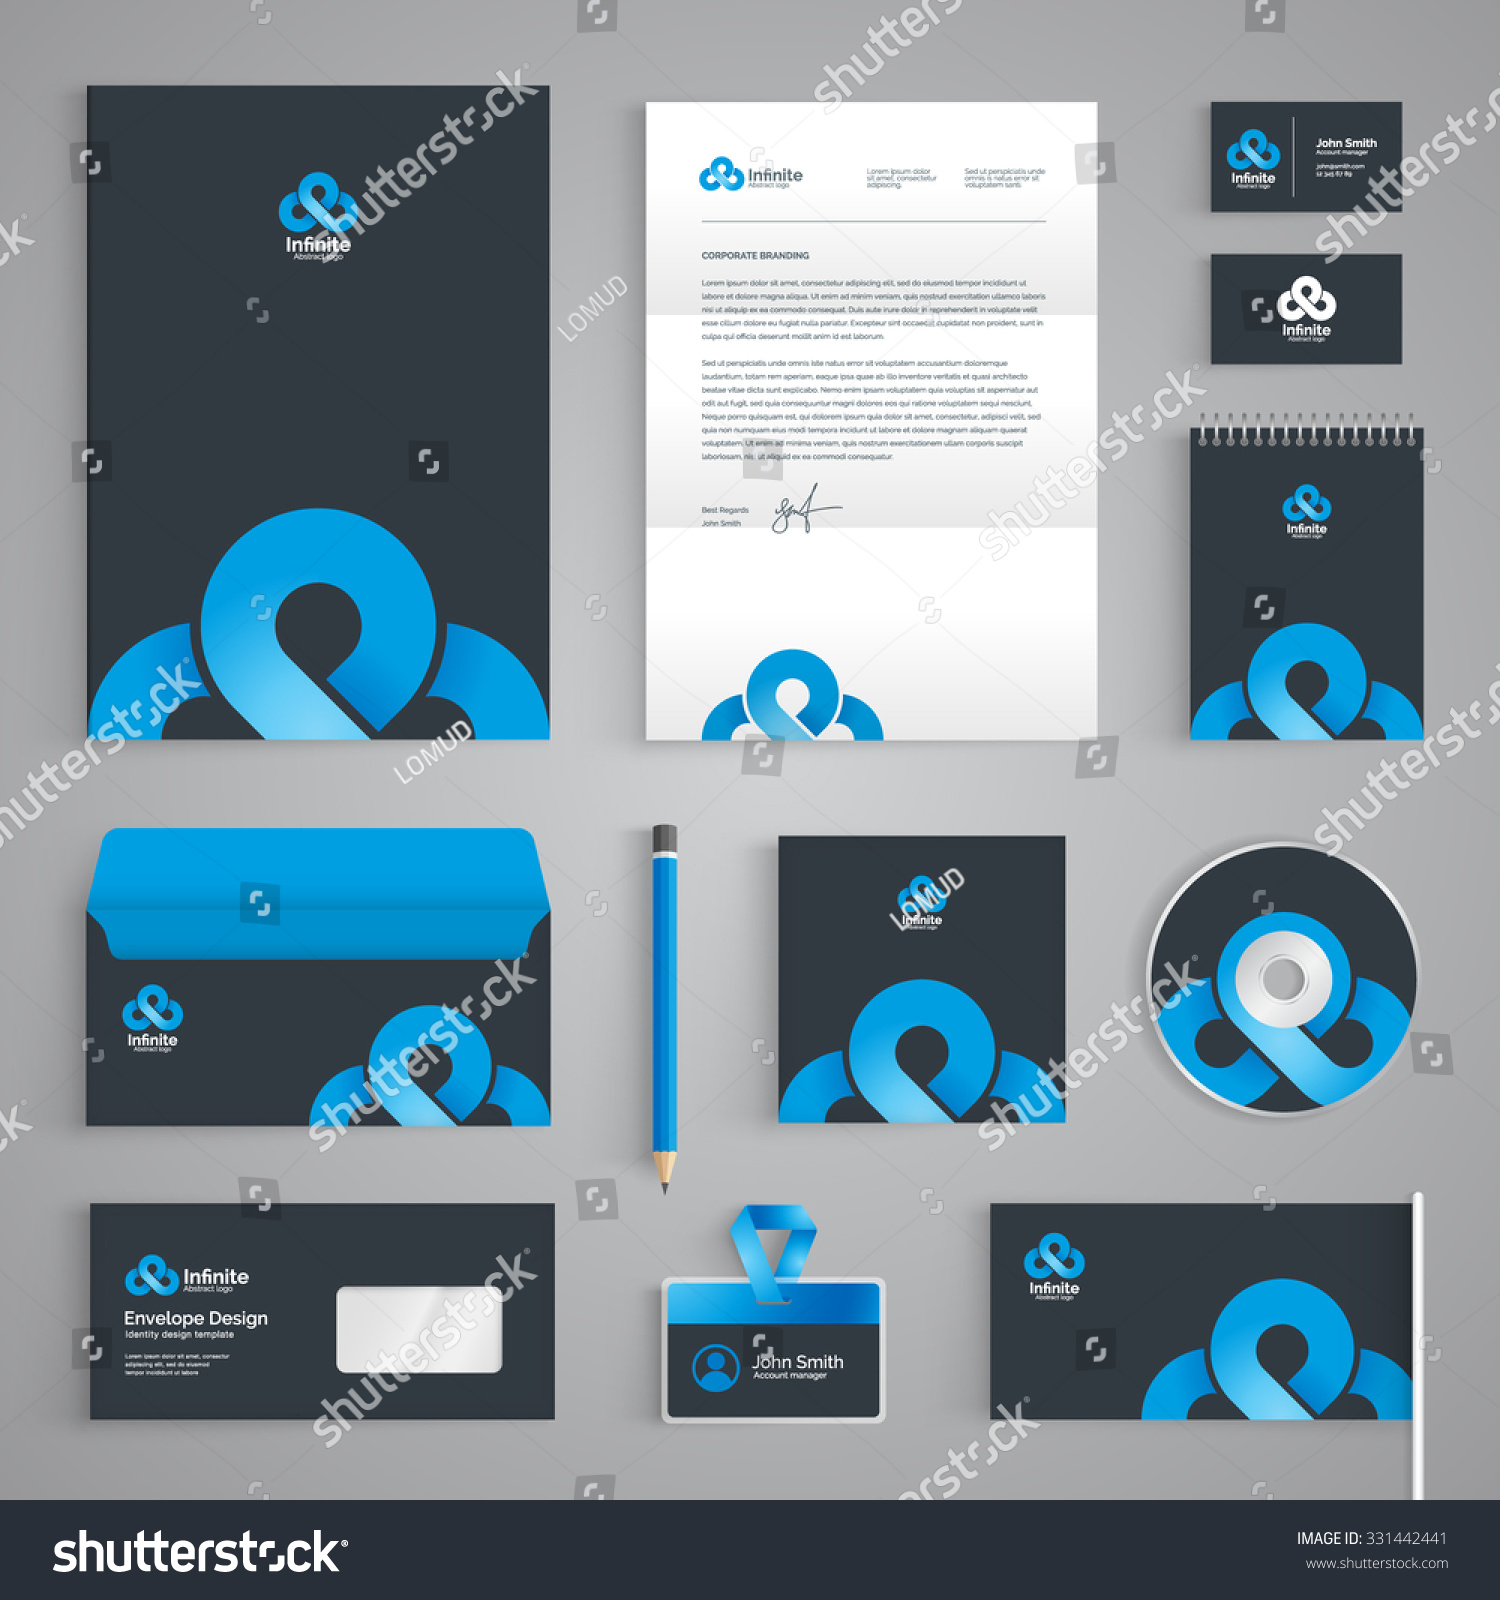 Corporate Identity Branding Template Abstract Vector Stock Vector